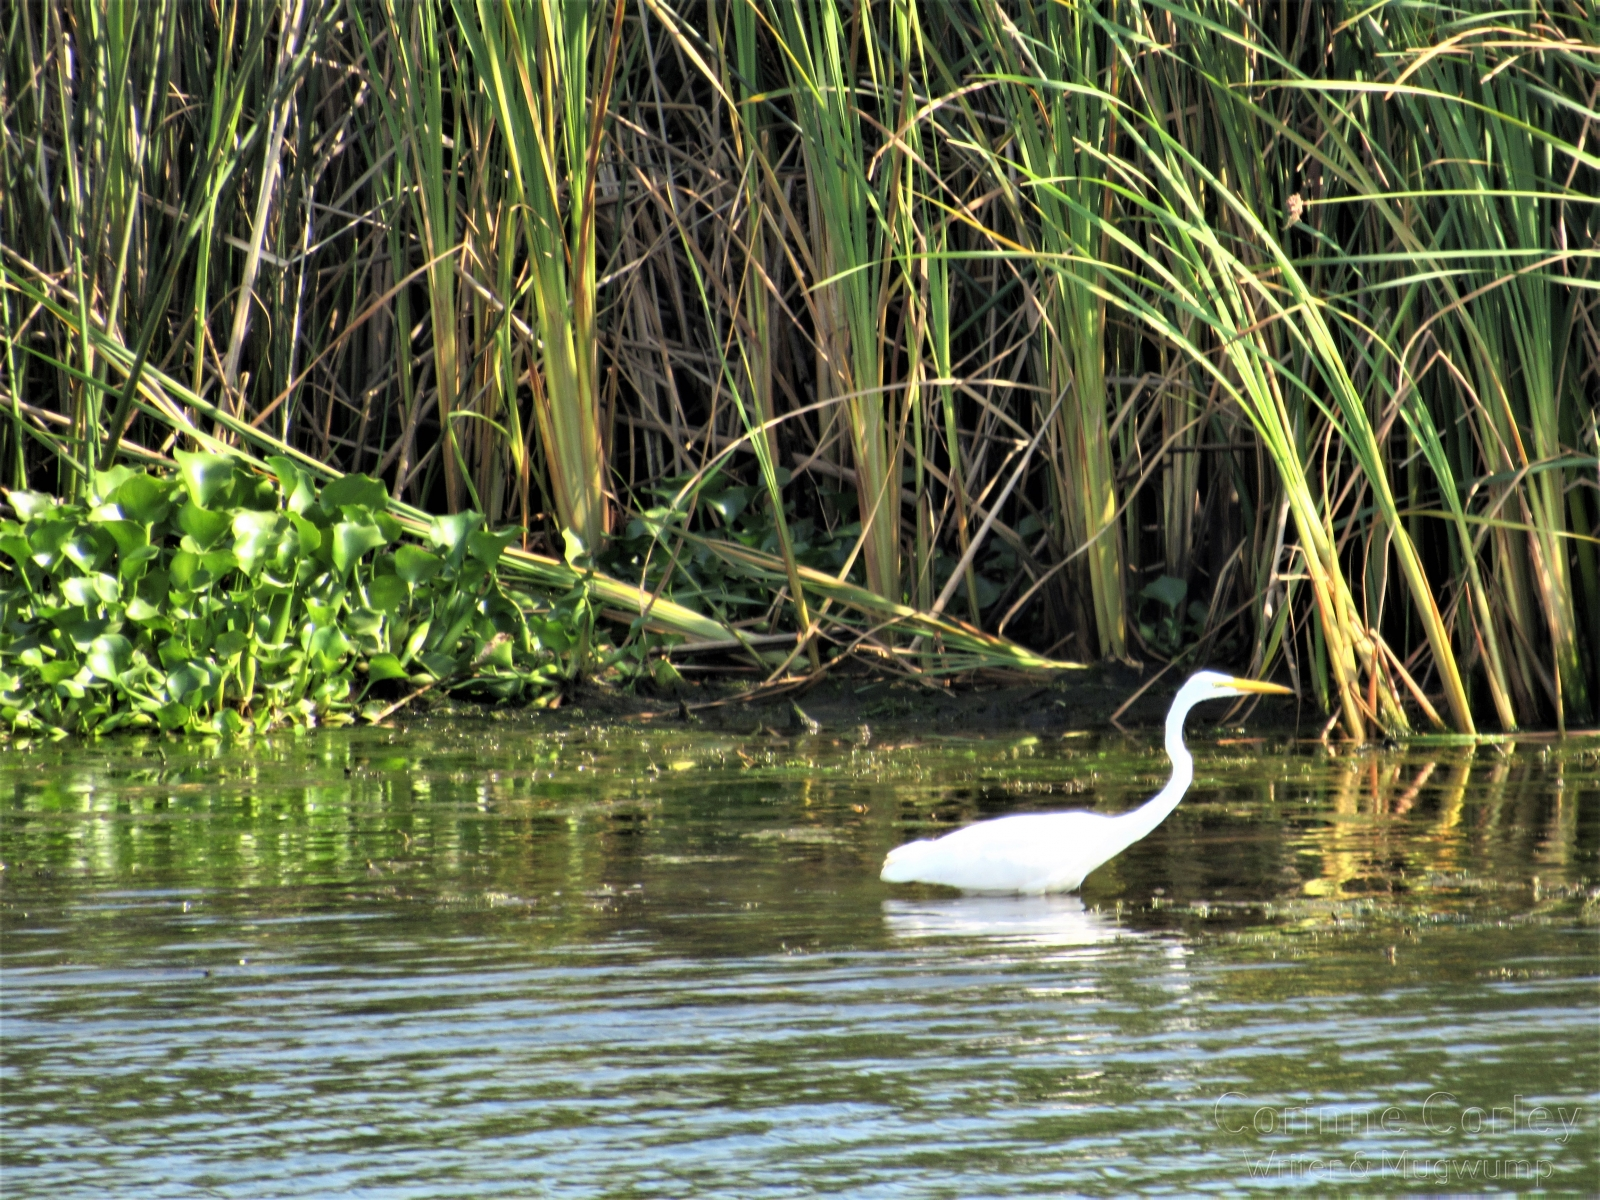 Lone-egret-in-the-river